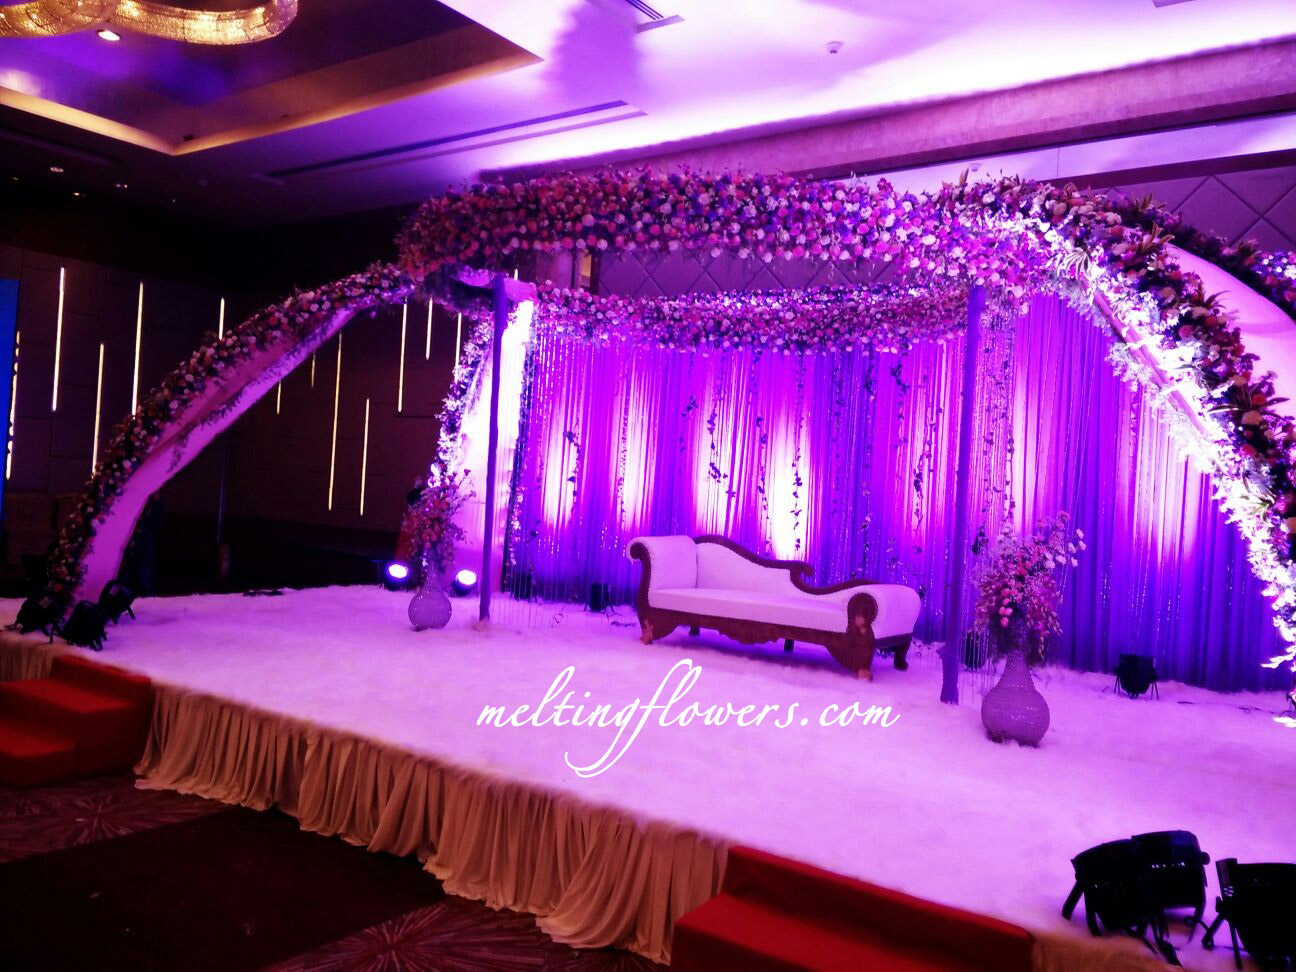 Reception Hall Decorations. Sheraton Grand Hotel Bangalore Unique Ideas To Decorate Reception Halls  Wedding Decorations